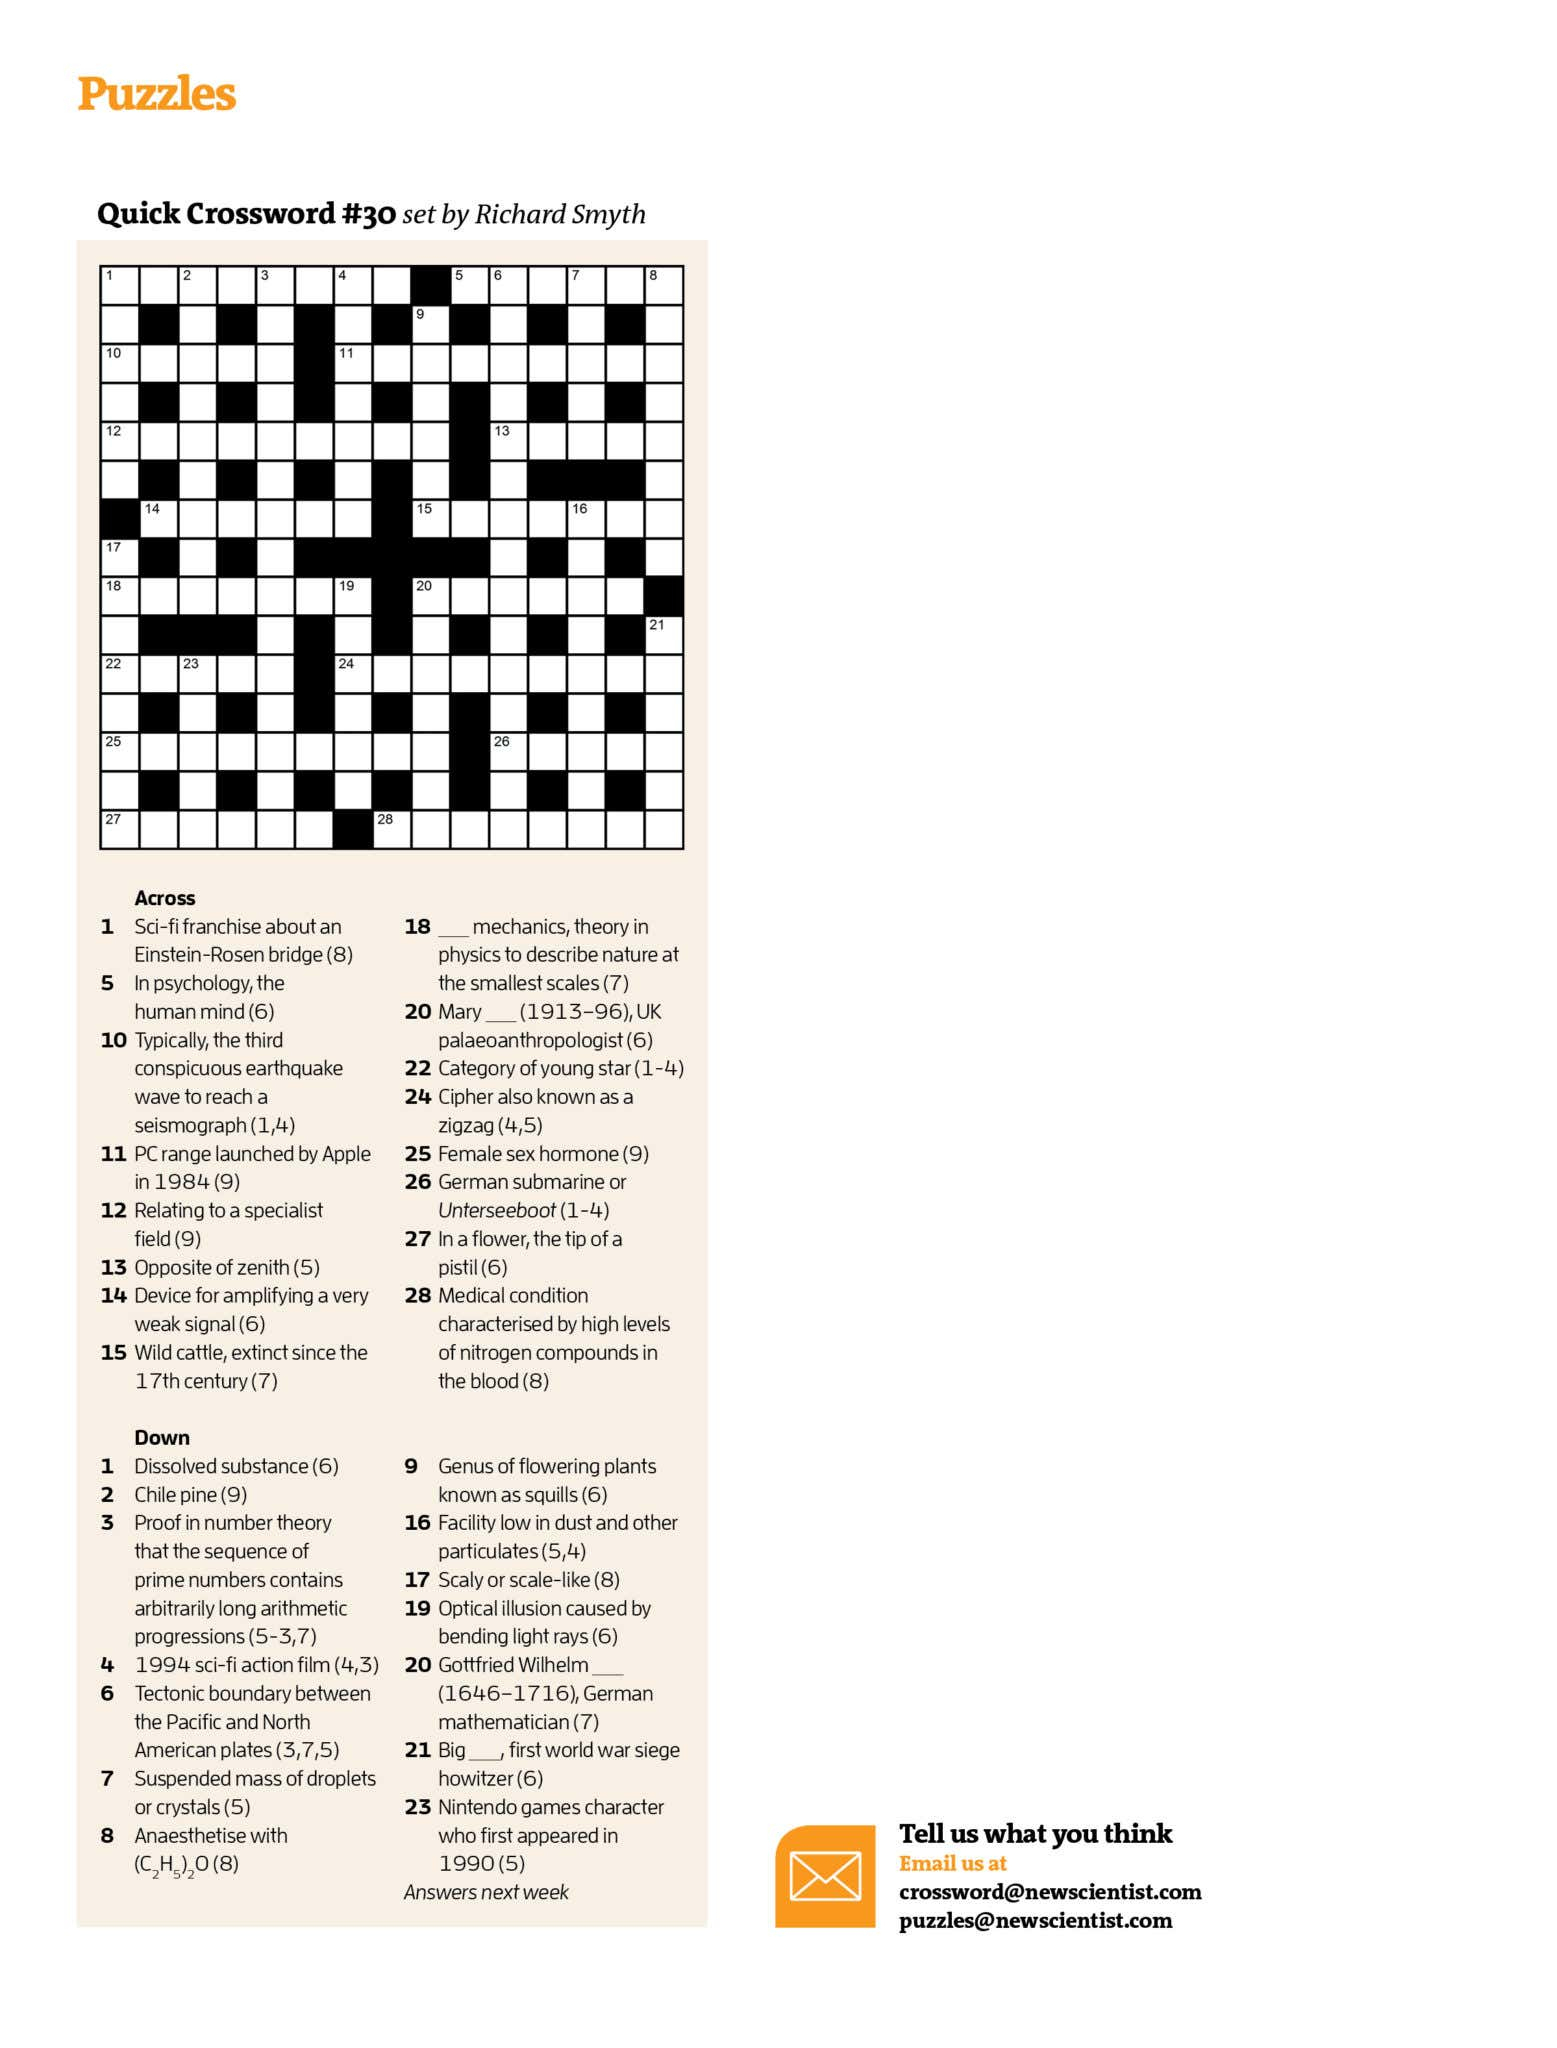 Quick Crossword #30 | New Scientist - Free Printable Quick Crossword Puzzles